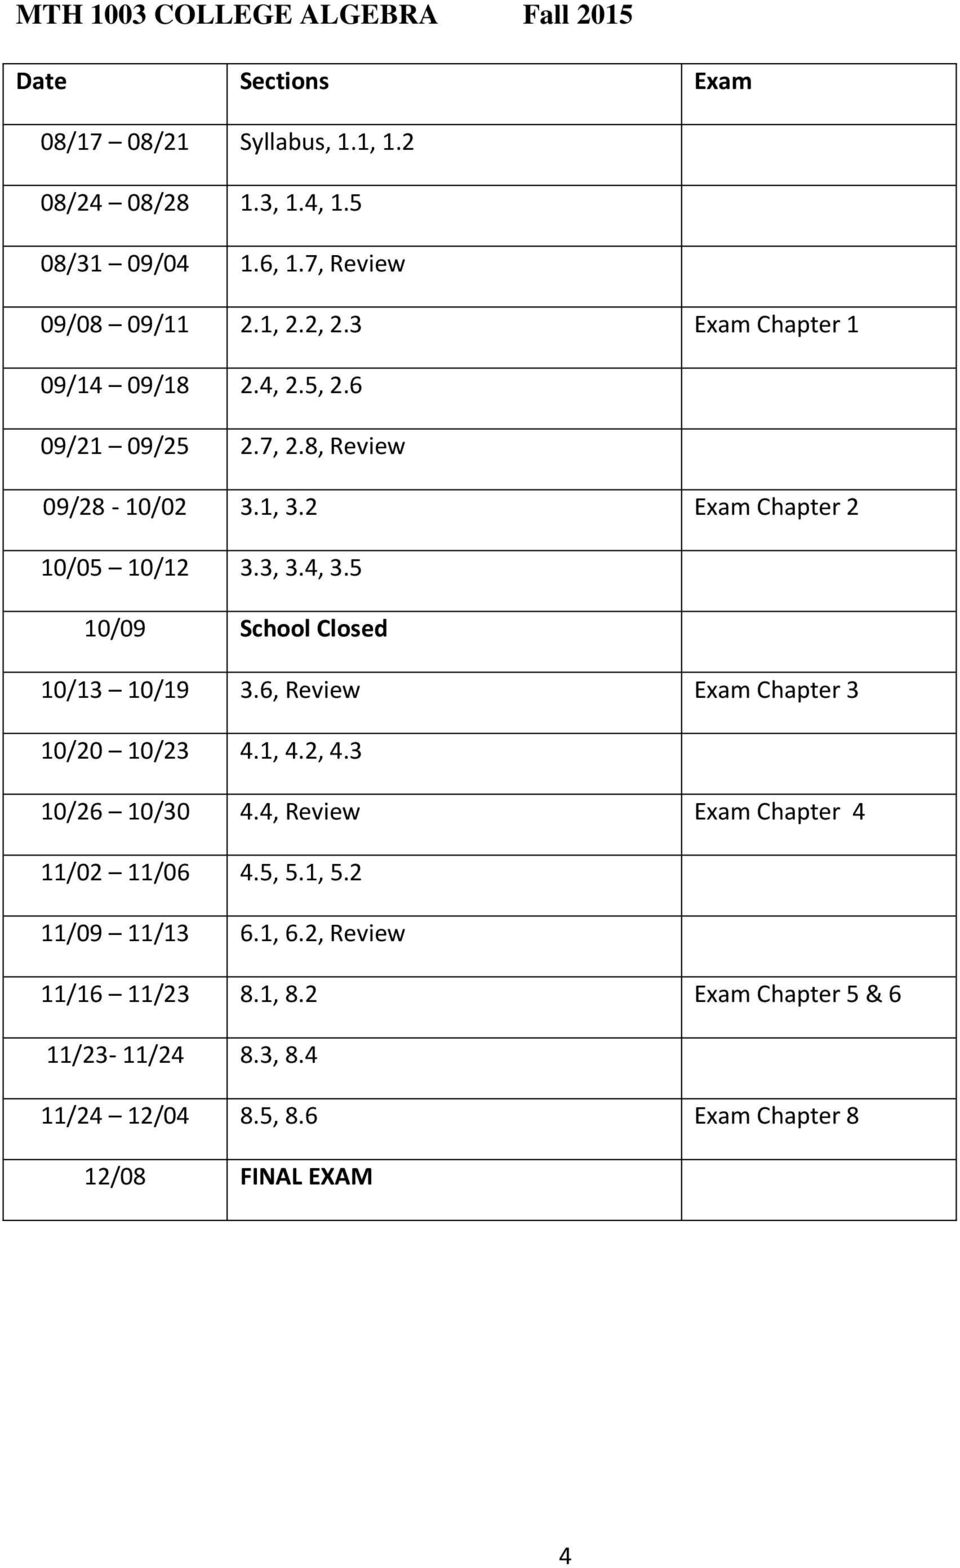 2 Exam Chapter 2 10/05 10/12 3.3, 3.4, 3.5 10/09 School Closed 10/13 10/19 3.6, Review Exam Chapter 3 10/20 10/23 4.1, 4.2, 4.3 10/26 10/30 4.